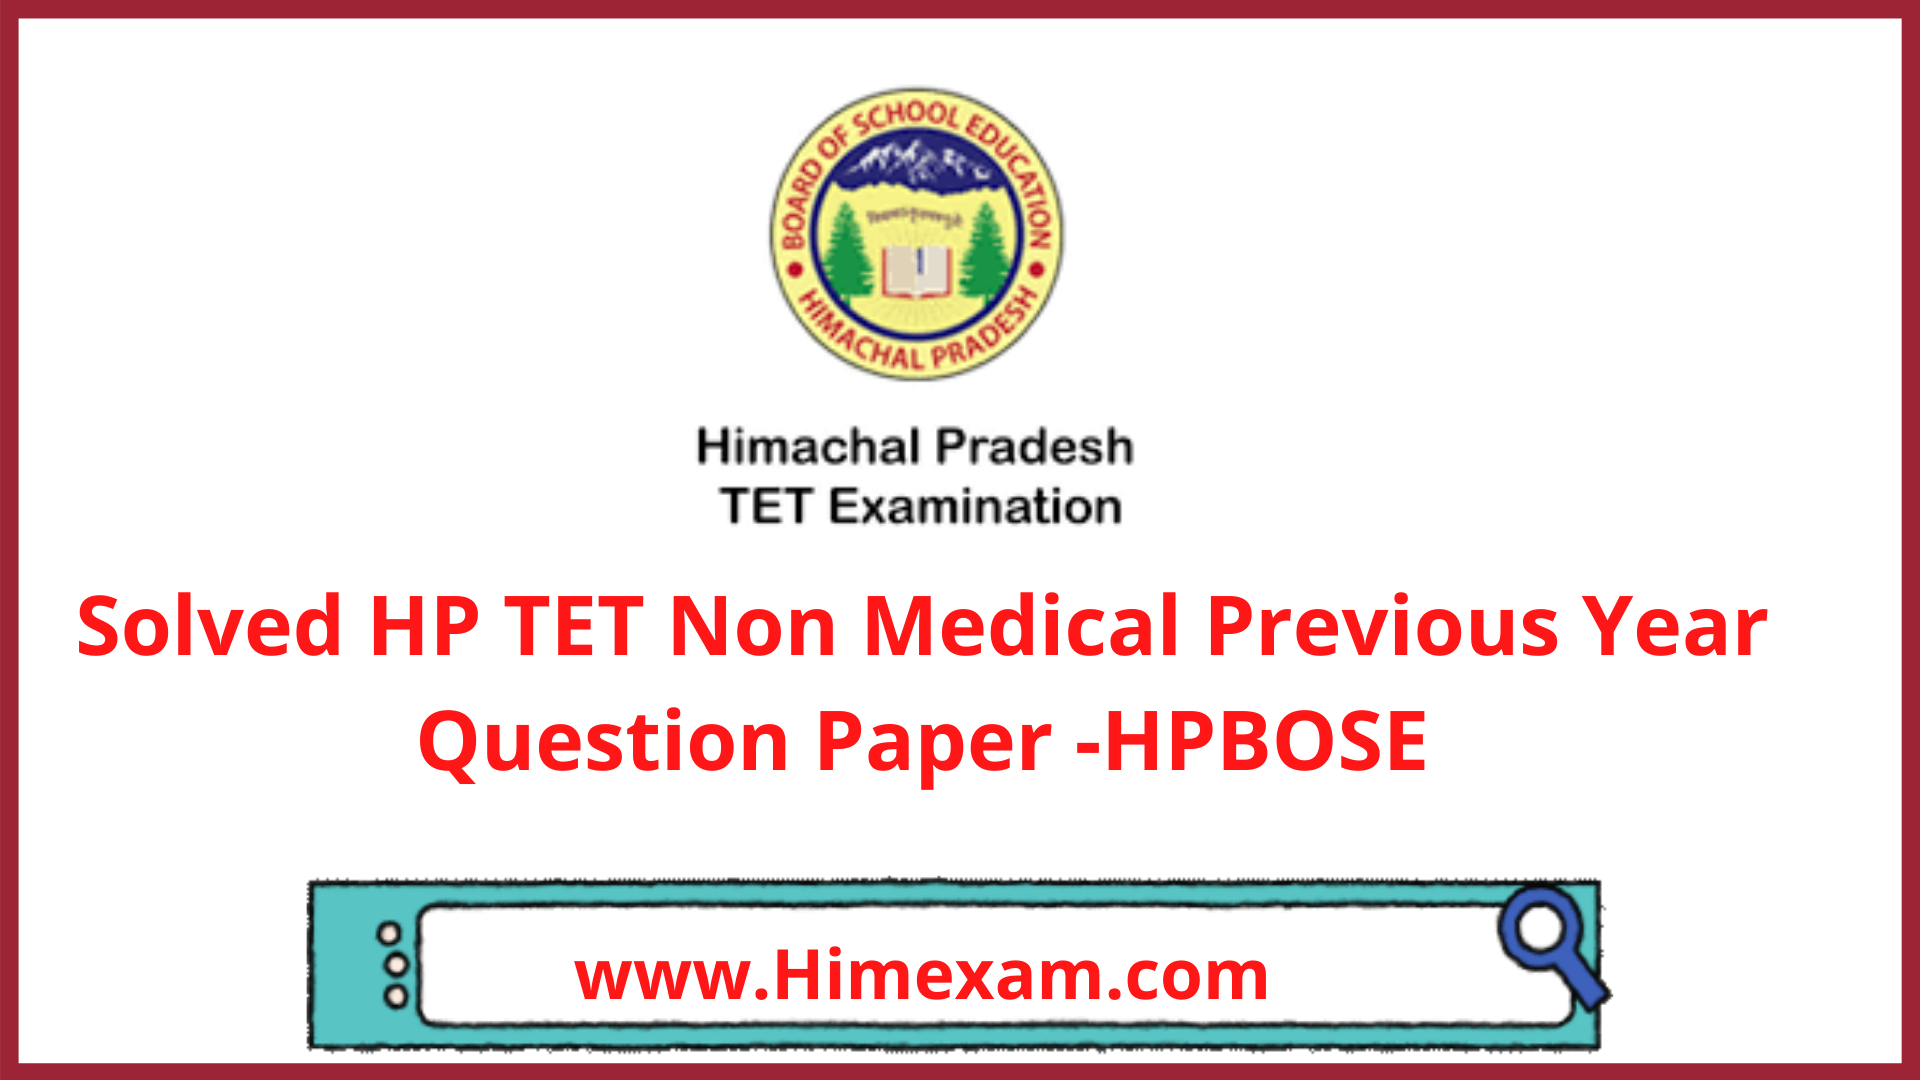 Solved HP TET Non Medical Previous Year Question Paper -HPBOSE